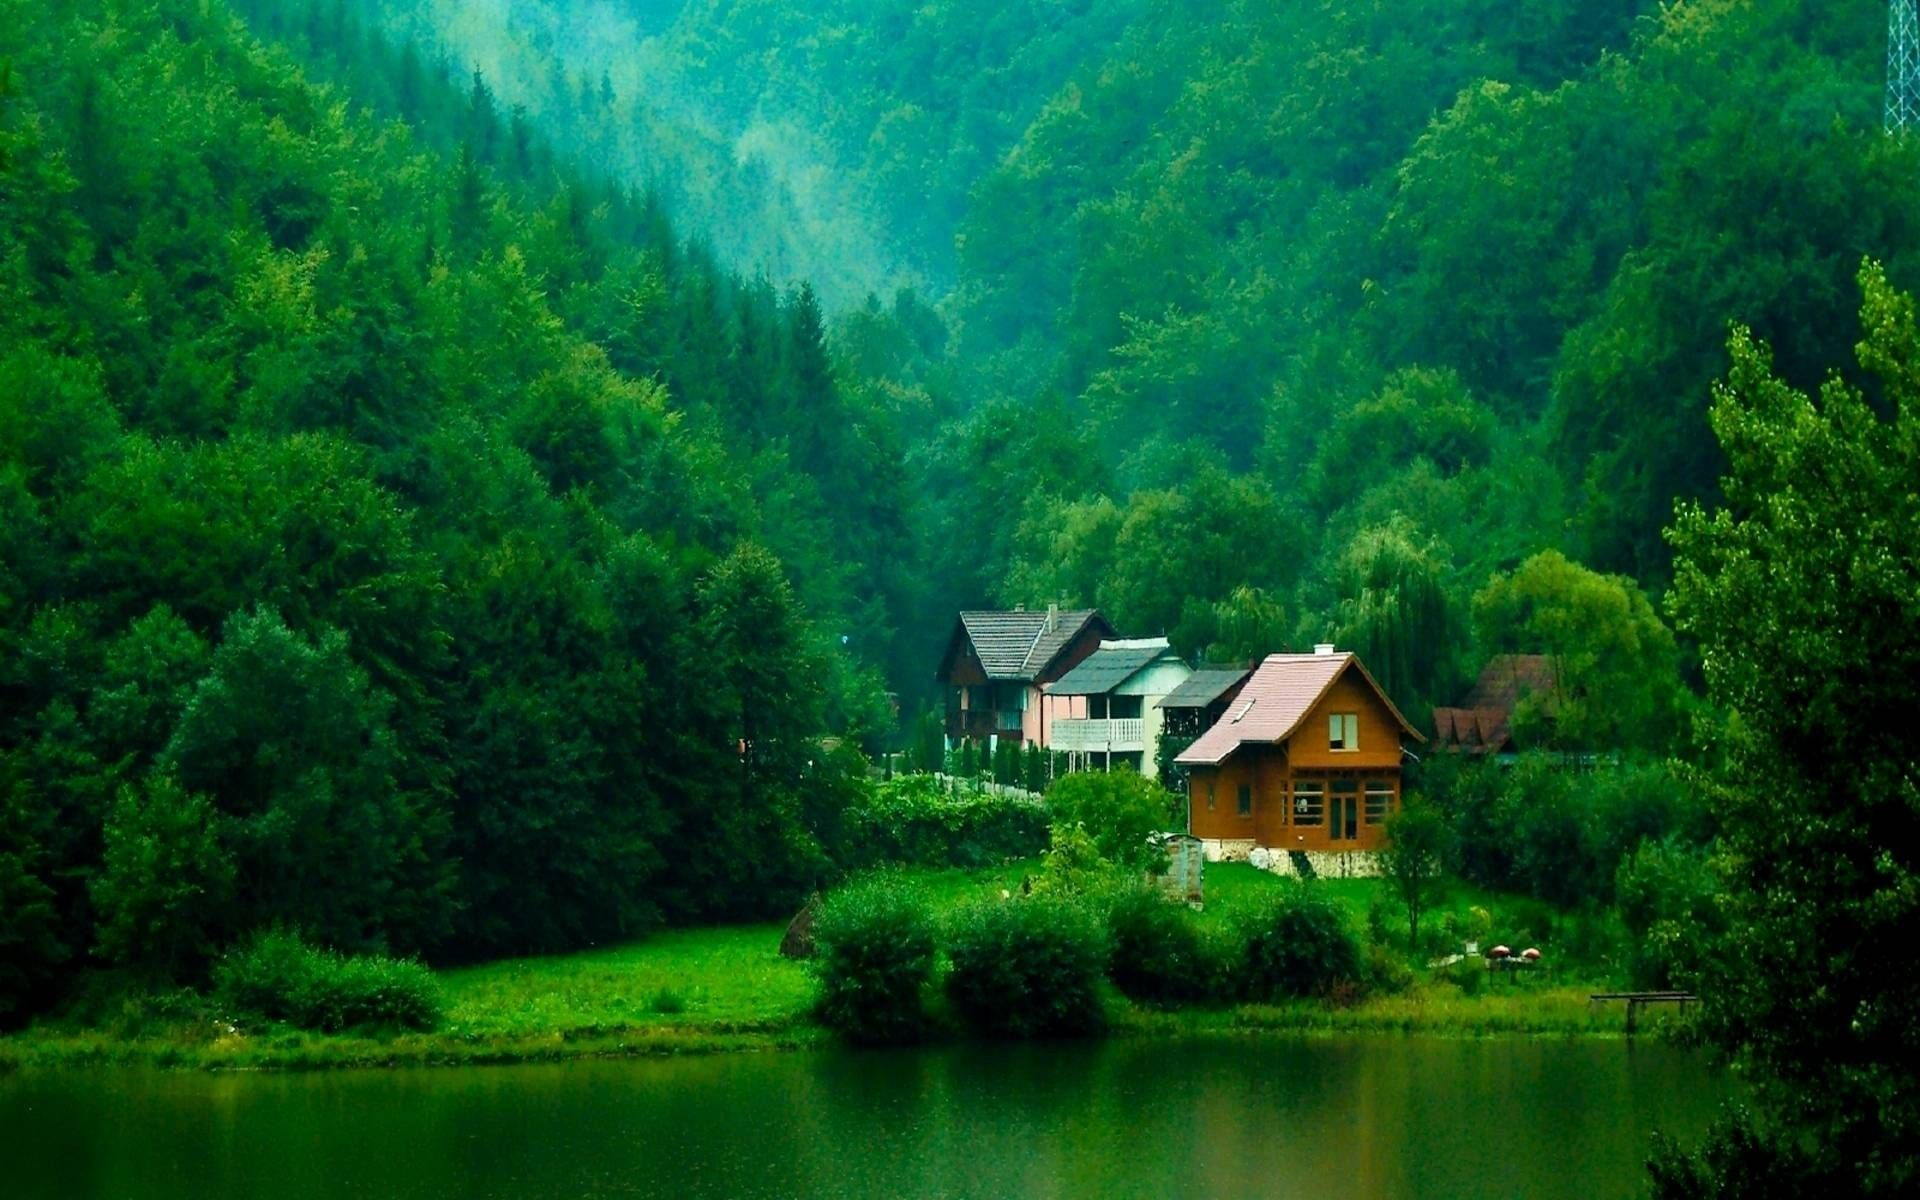 1920x1200 Hd Wallpaper Nature Beautiful Places In The World Forest House Places Around The World